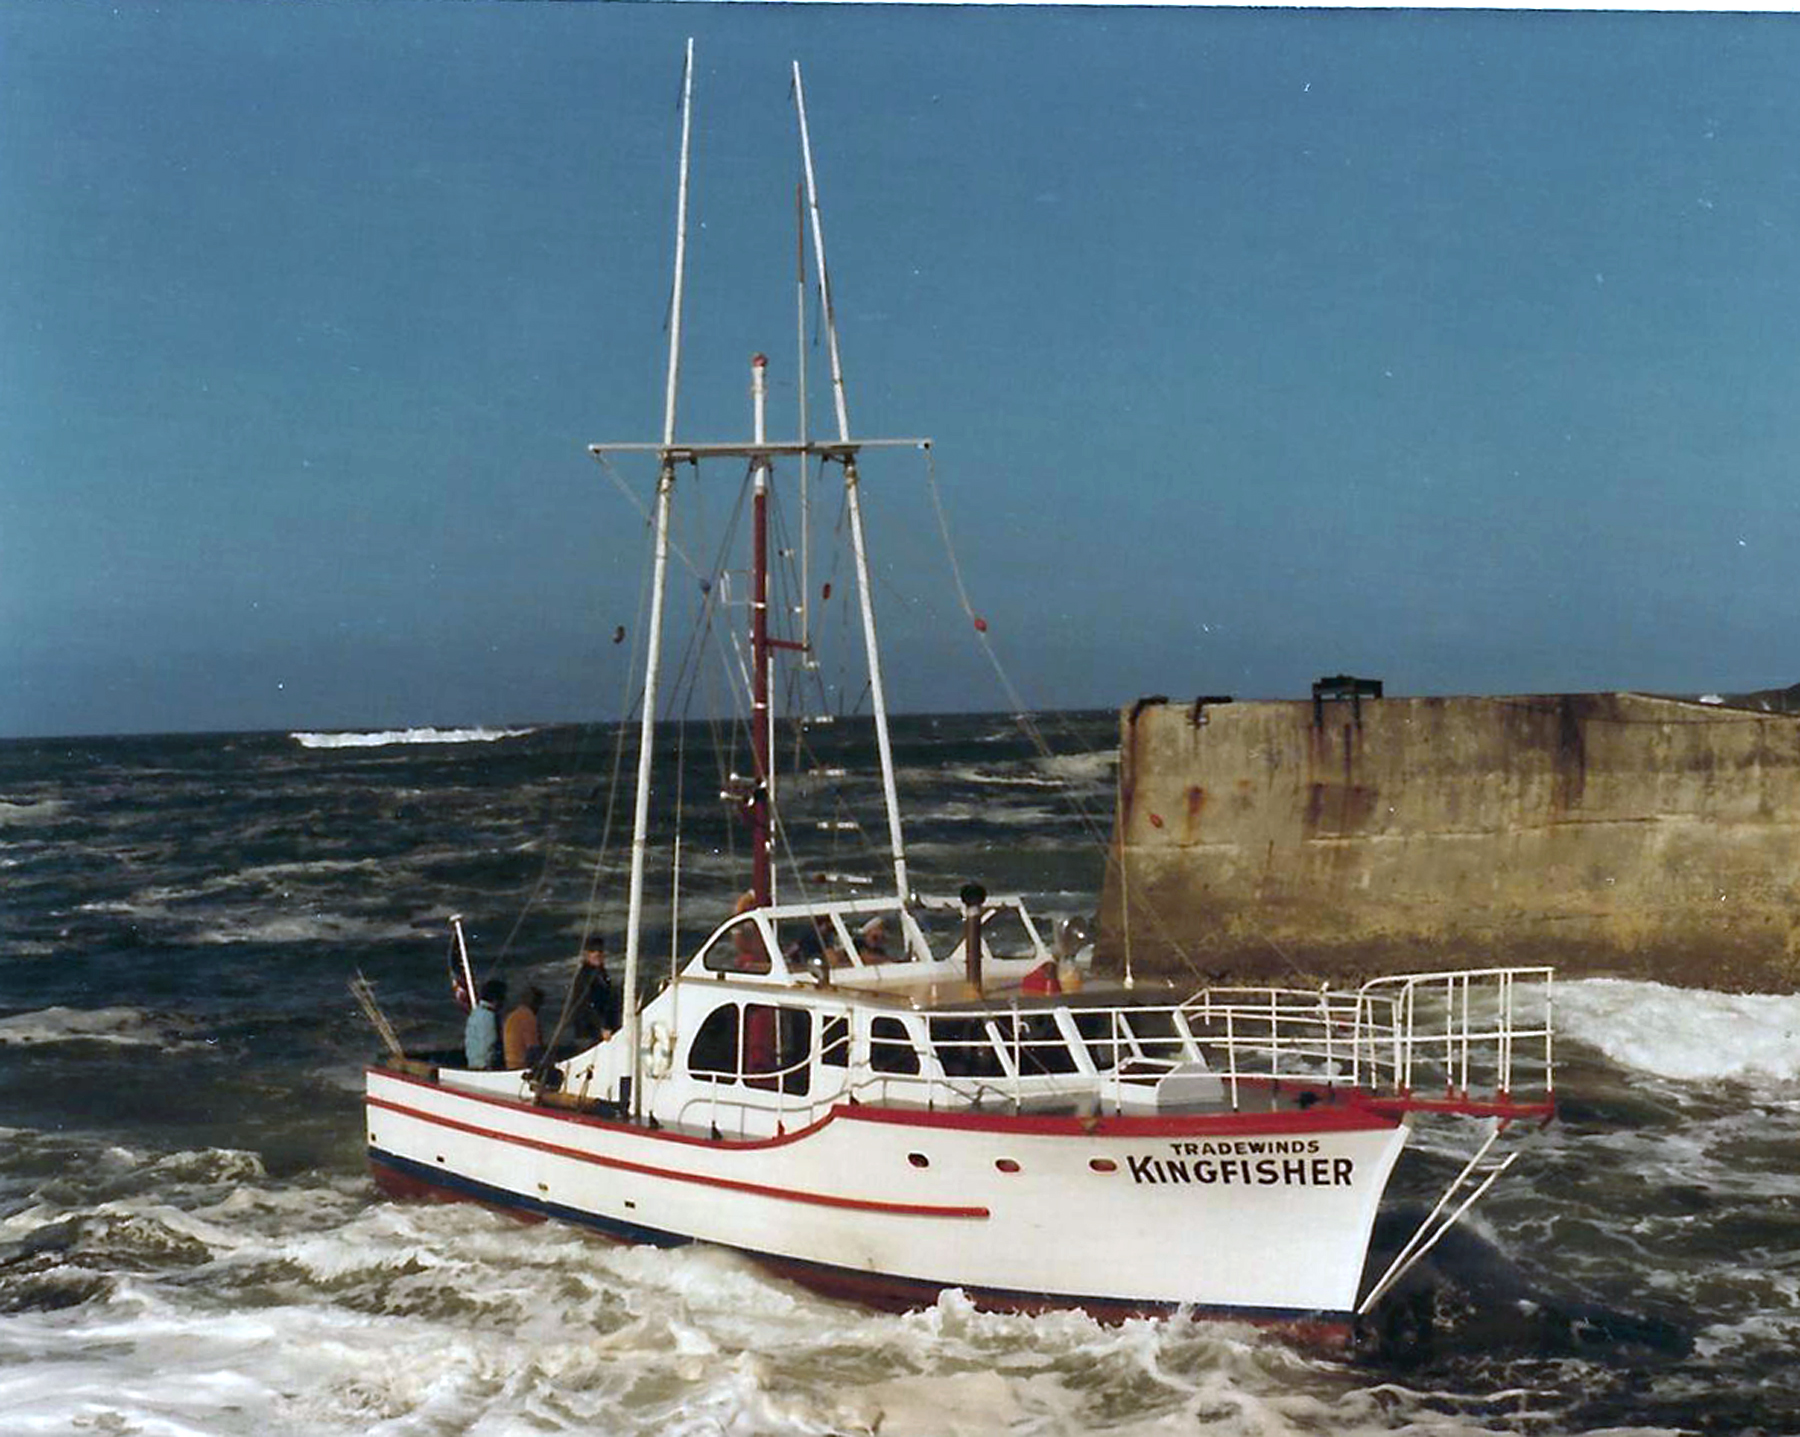 Demise of depoe bay s historic boat tradewinds kingfisher for Charter fishing newport oregon